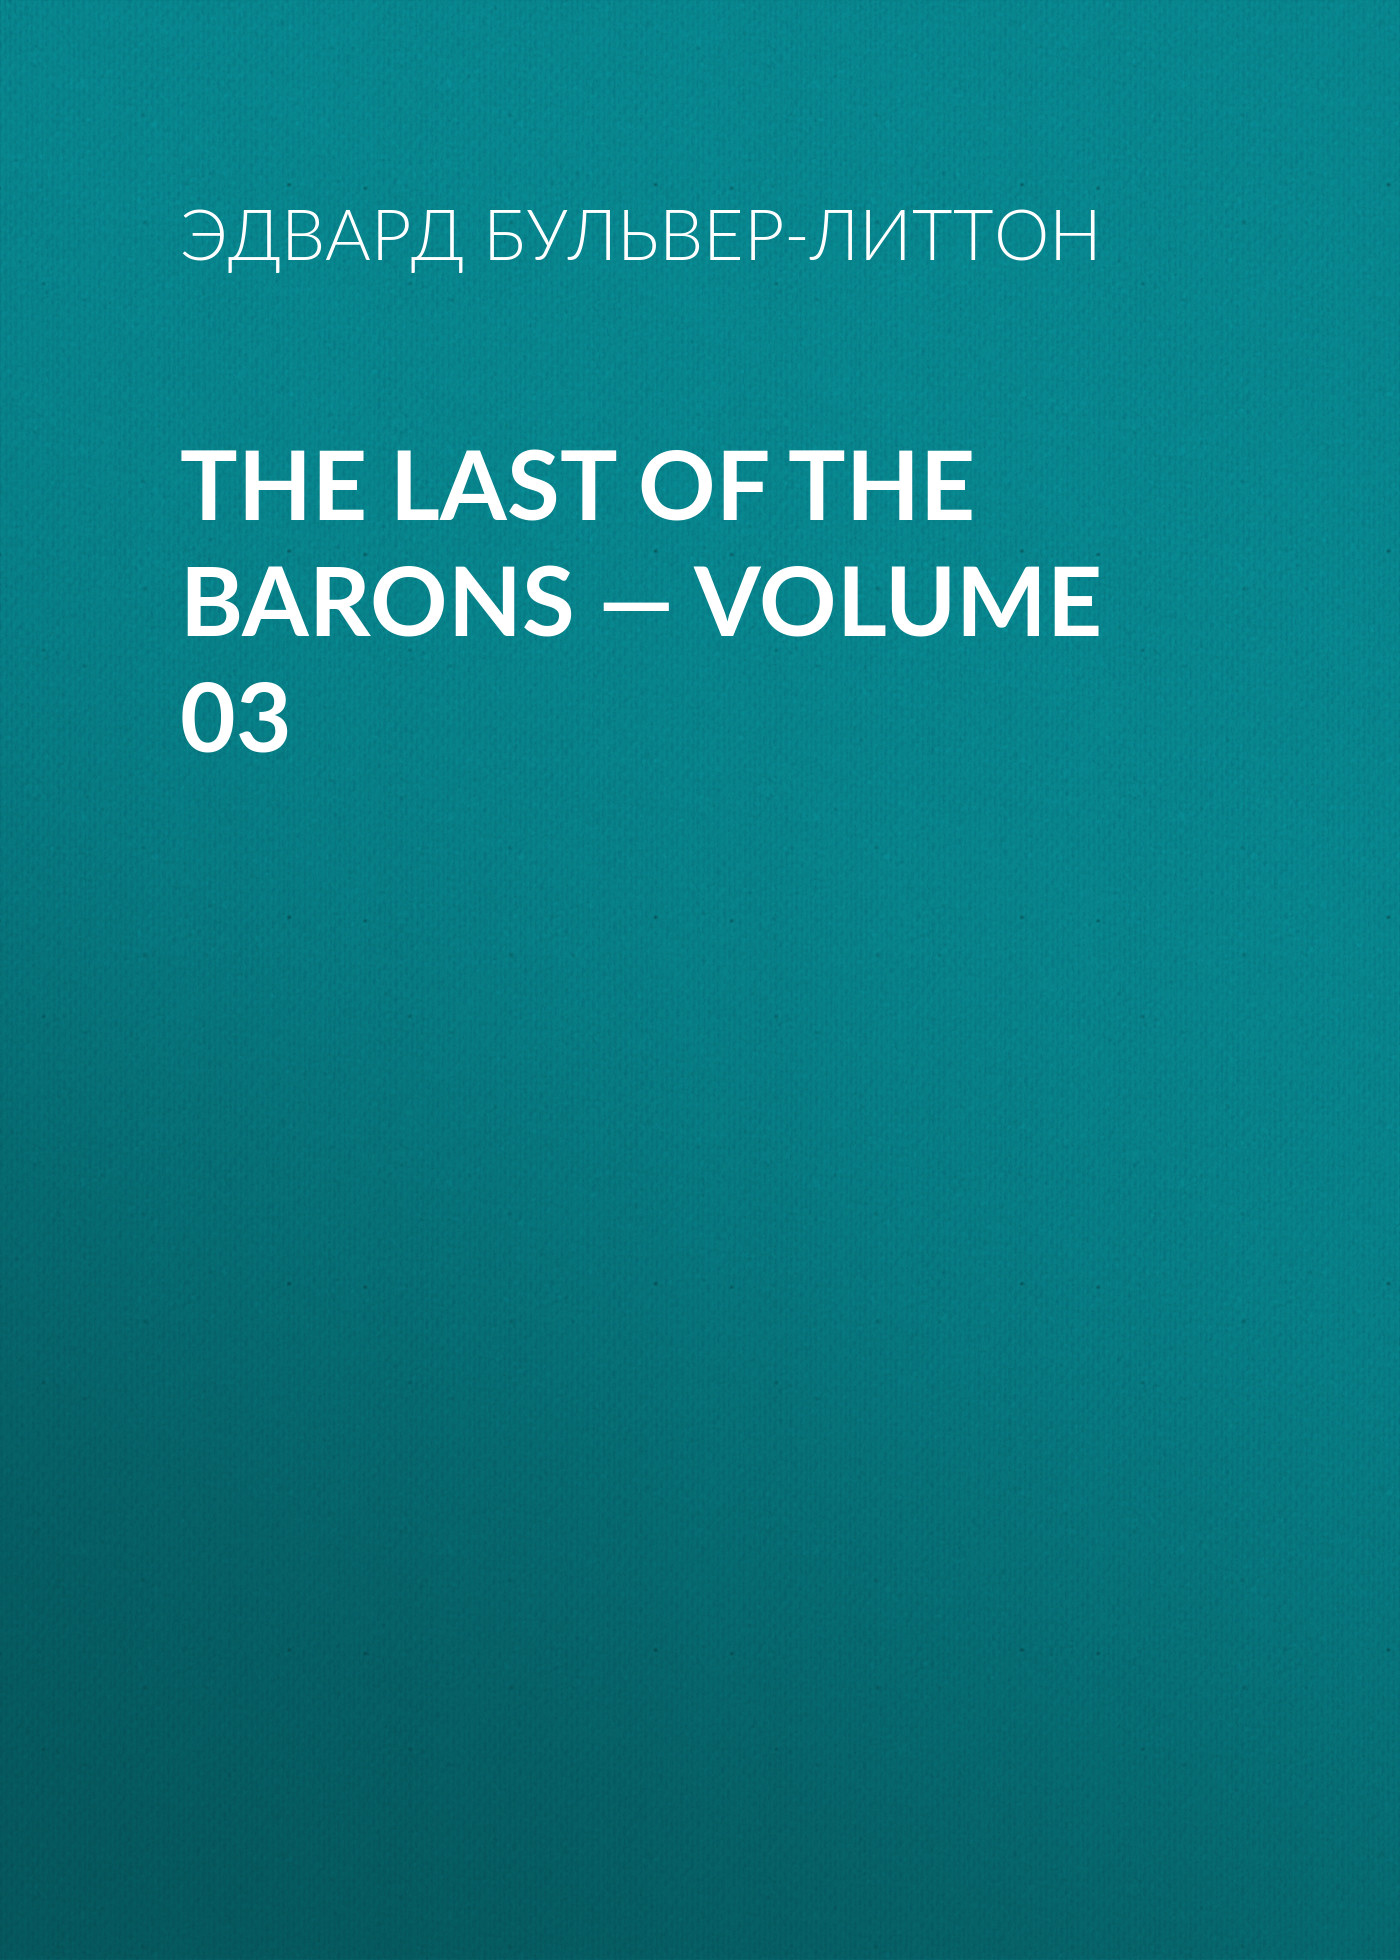 Эдвард Бульвер-Литтон The Last of the Barons — Volume 03 fayrene preston the barons of texas tess